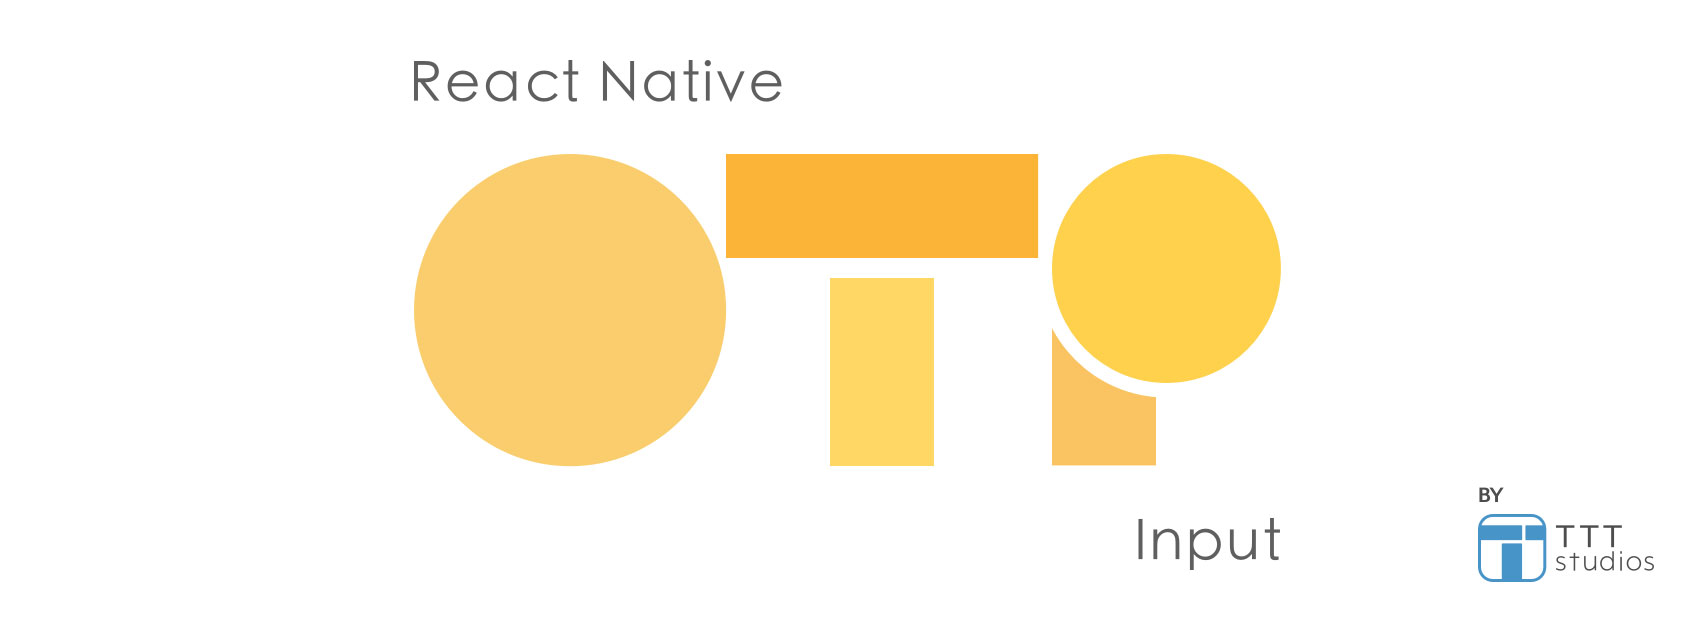 twotalltotems/react-native-otp-input 1 0 23 on npm - Libraries io